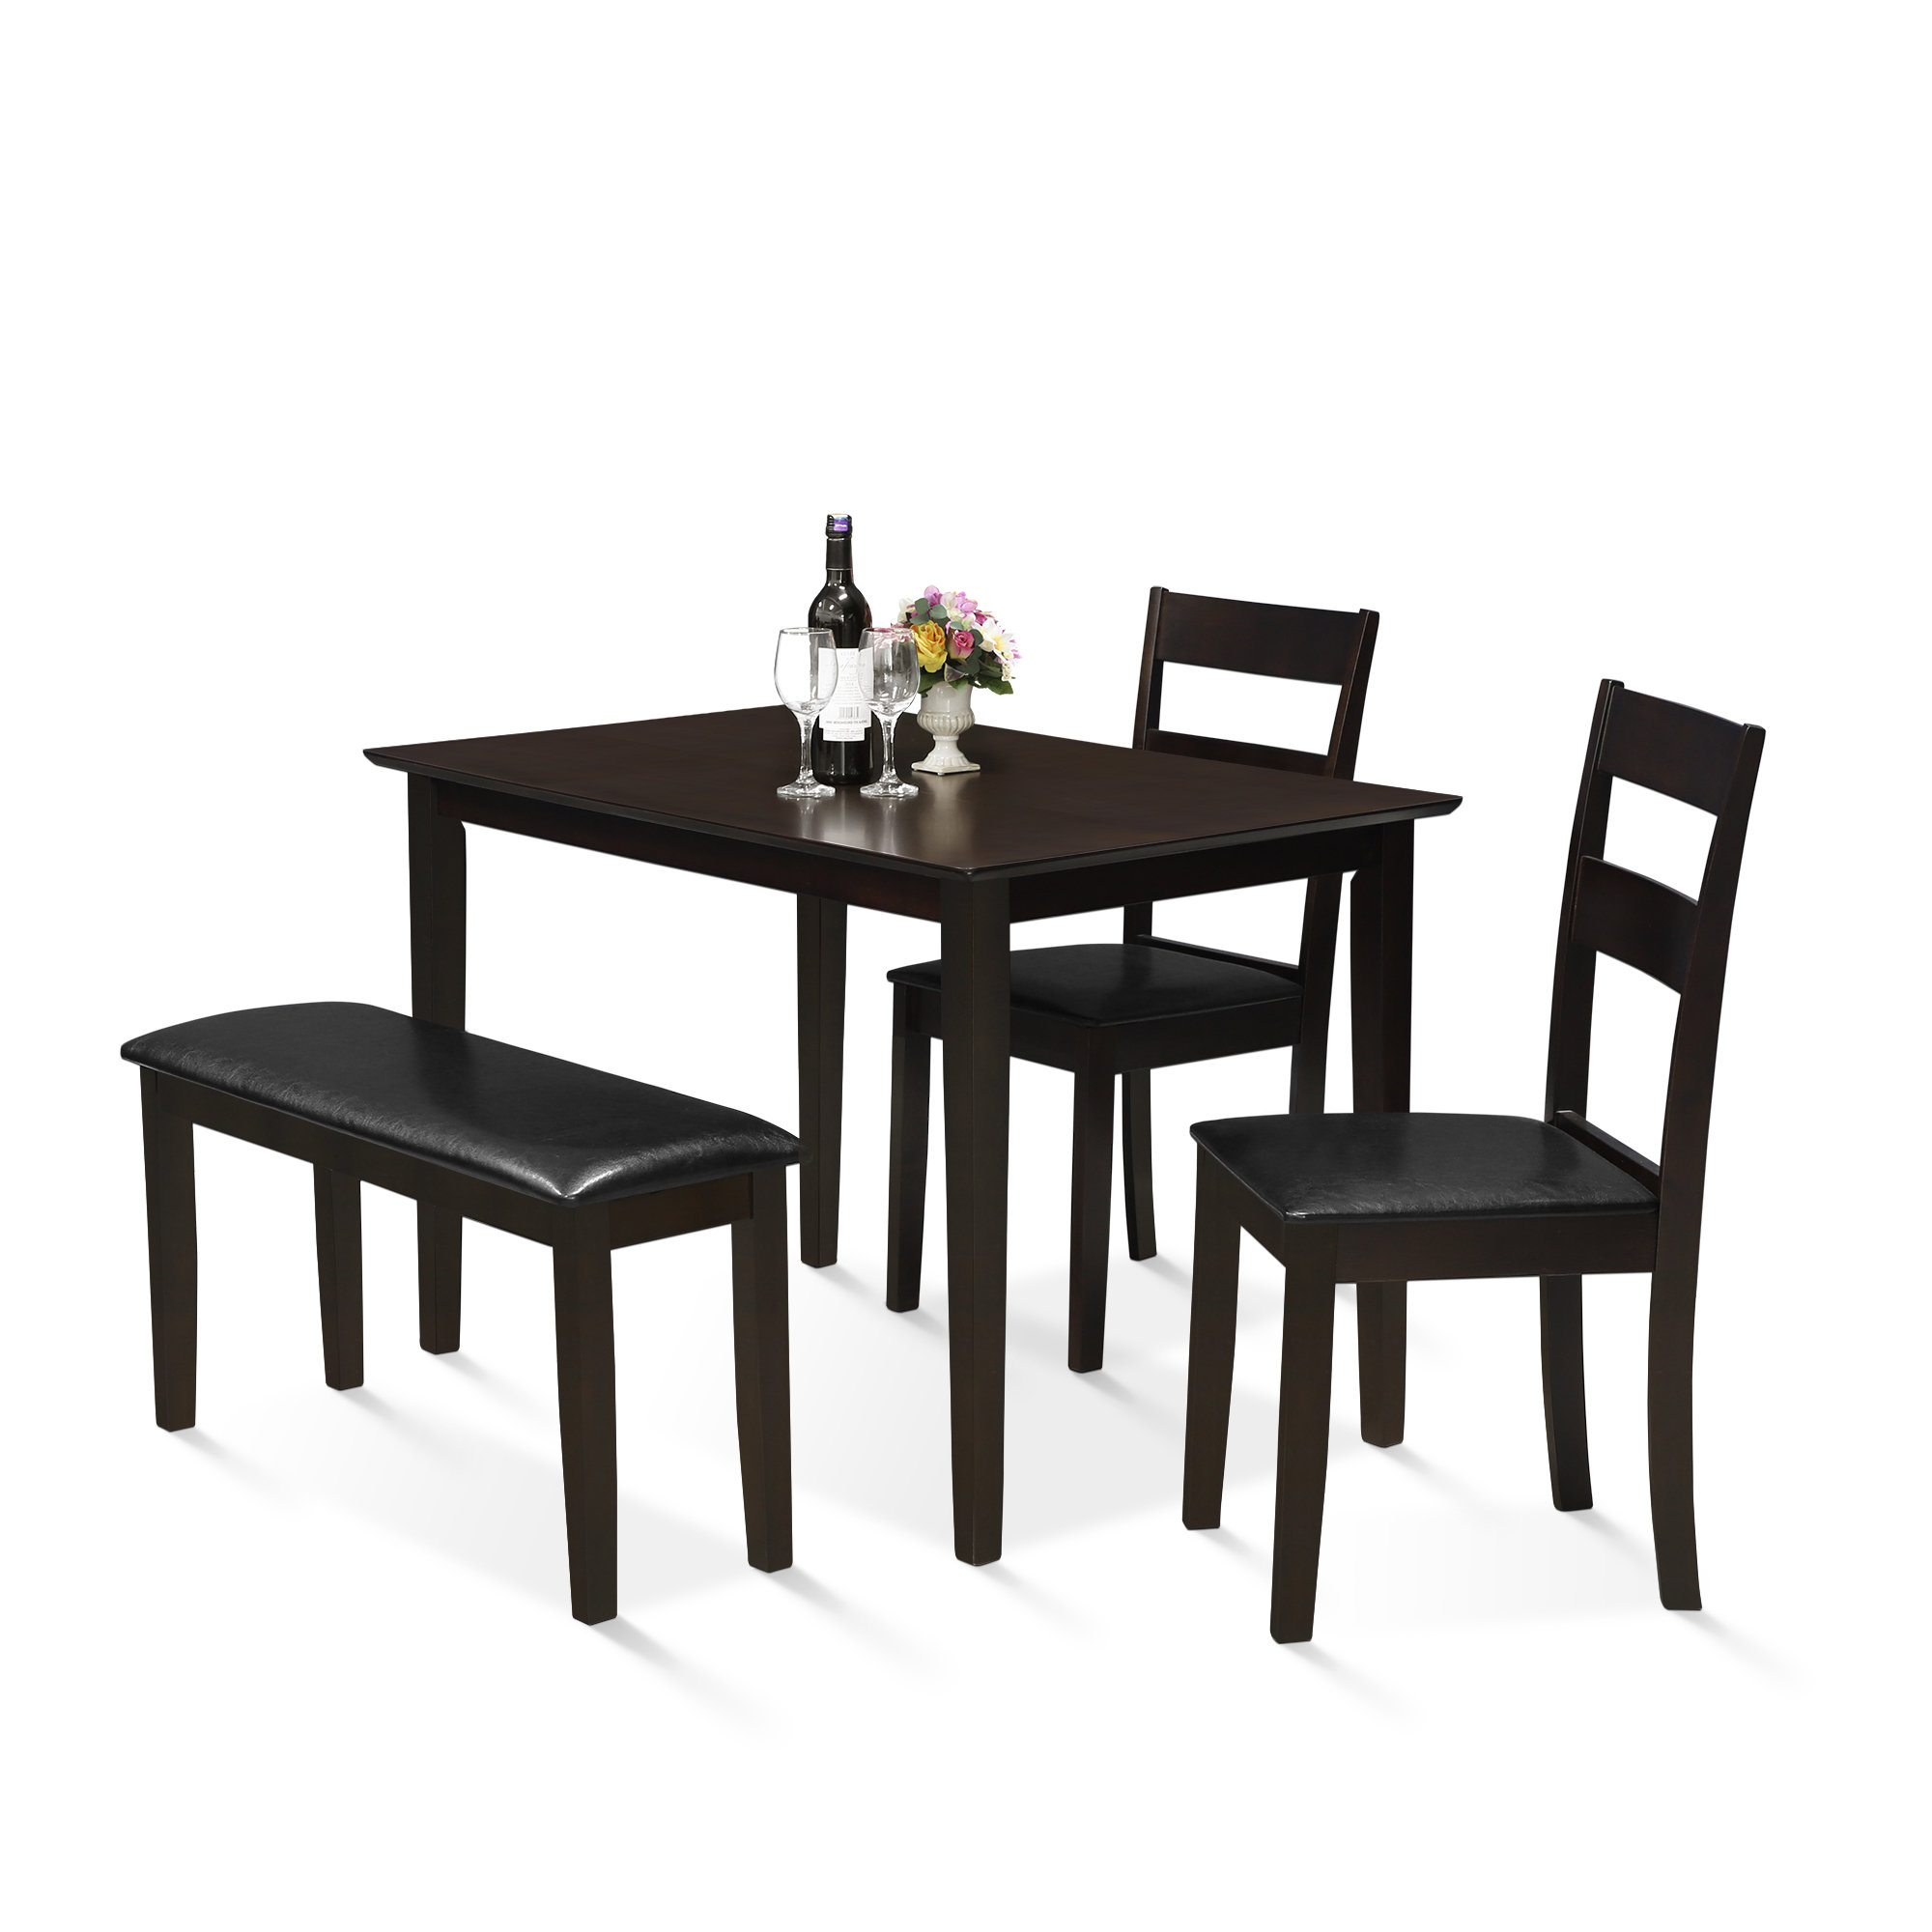 Widely Used Miskell 3 Piece Dining Sets For Red Barrel Studio Mealor 4 Piece Dining Set (#19 of 20)